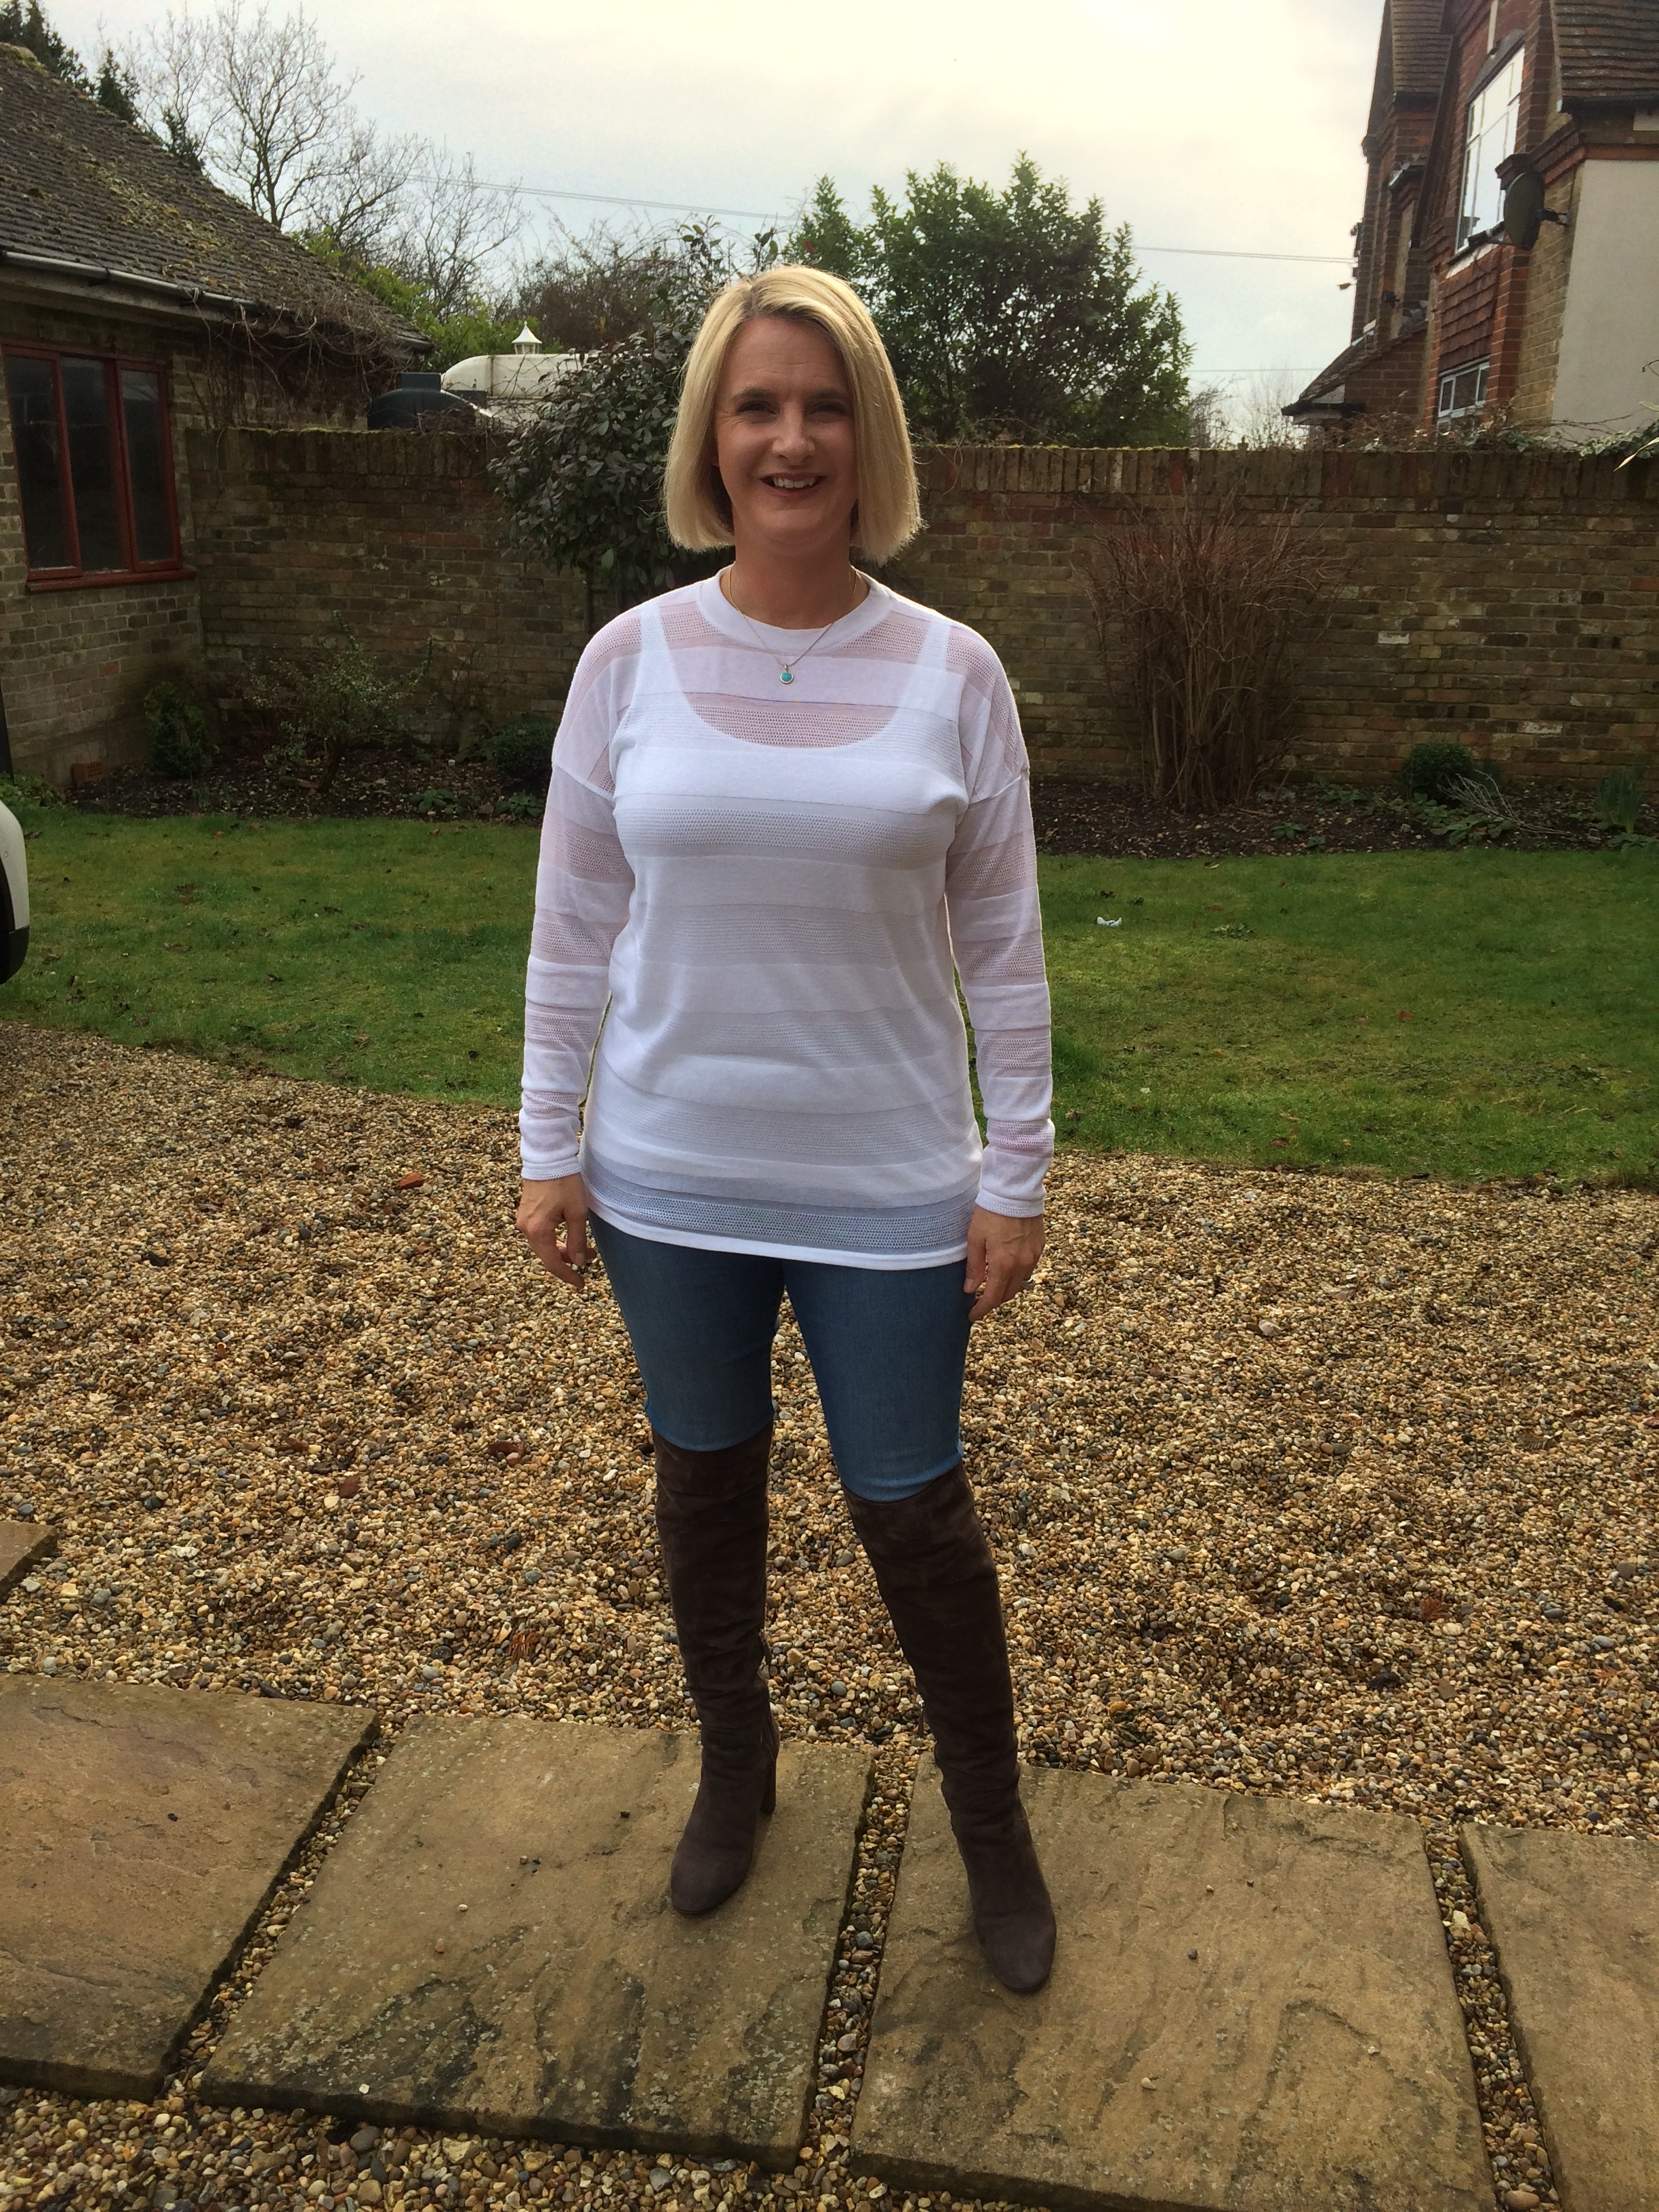 Top from Next, Vest from Marks and Spencer, Eden Jeggings from Dorothy Perkins,Boots from LK Bennett.